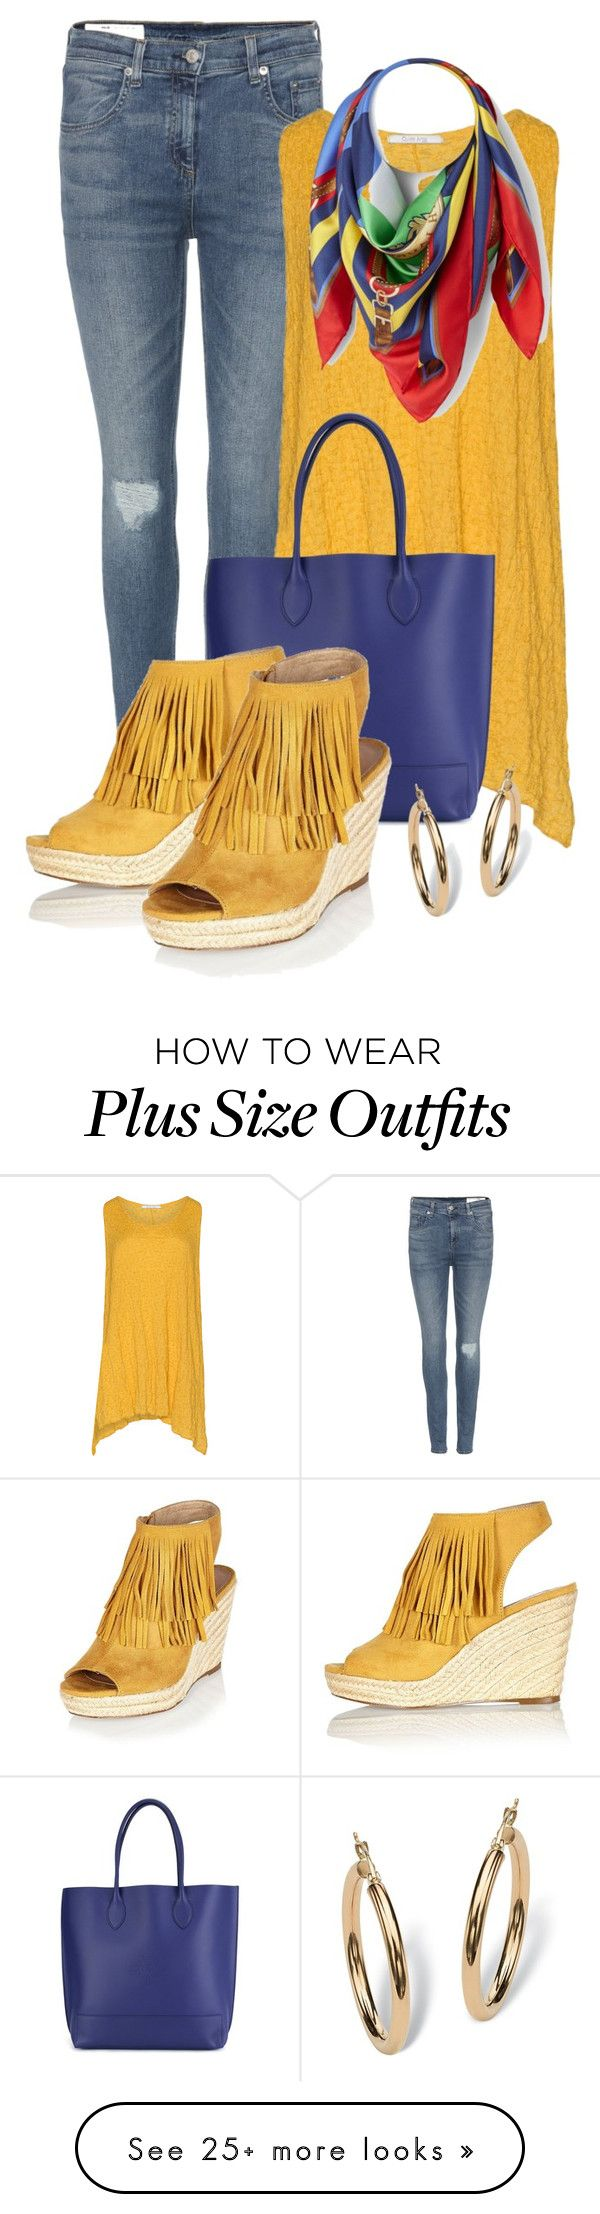 """Untitled #1220"" by carla-palmisano-50 on Polyvore featuring rag & bone, Oliver Jung, Mulberry, River Island and Palm Beach Jewelry"